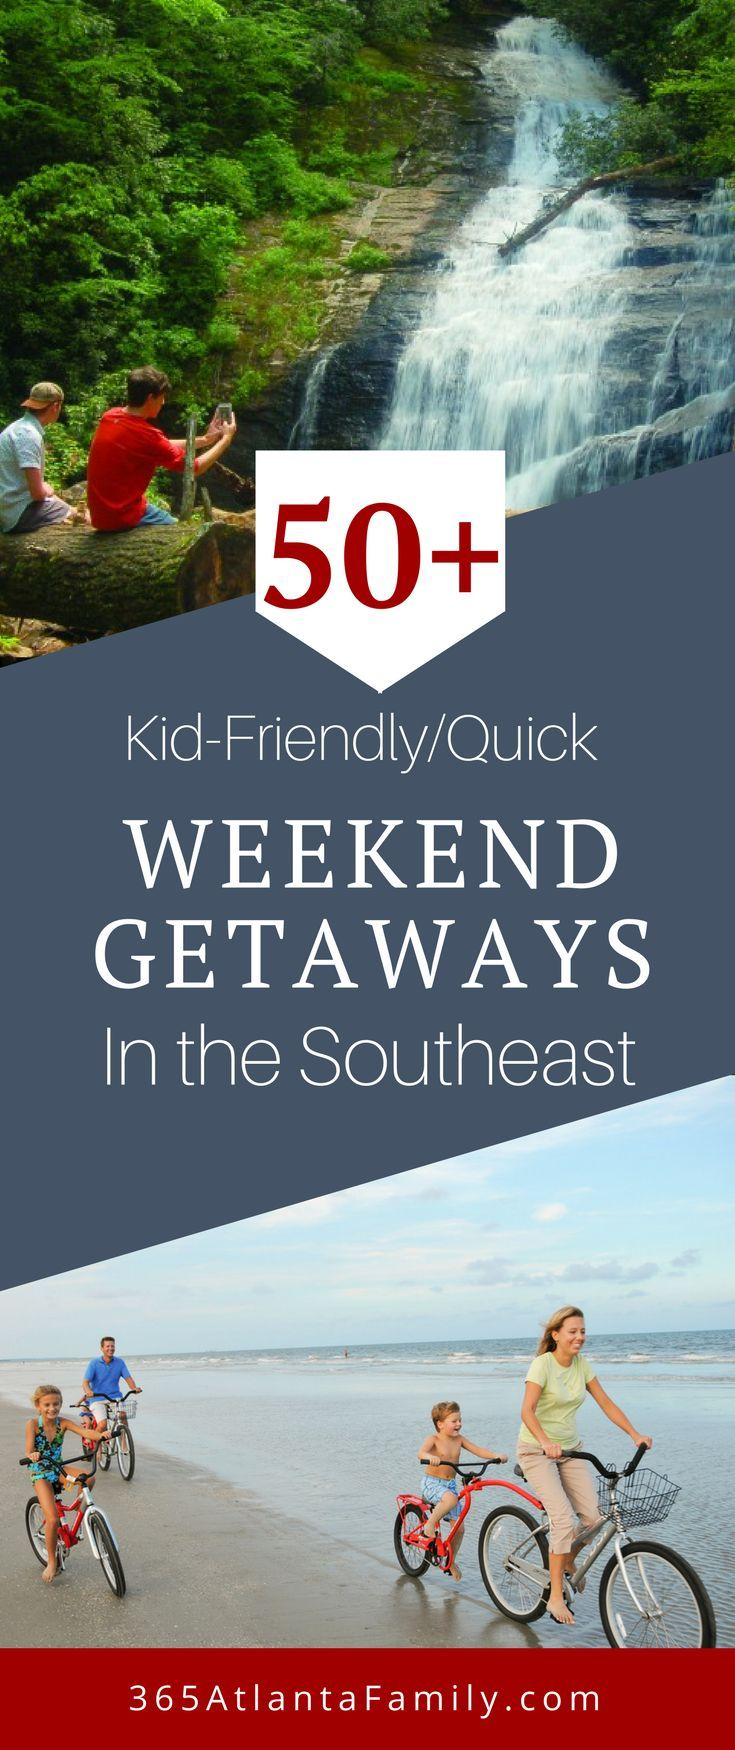 8194 best fellow family travelers images on pinterest for Best weekend getaways in southeast